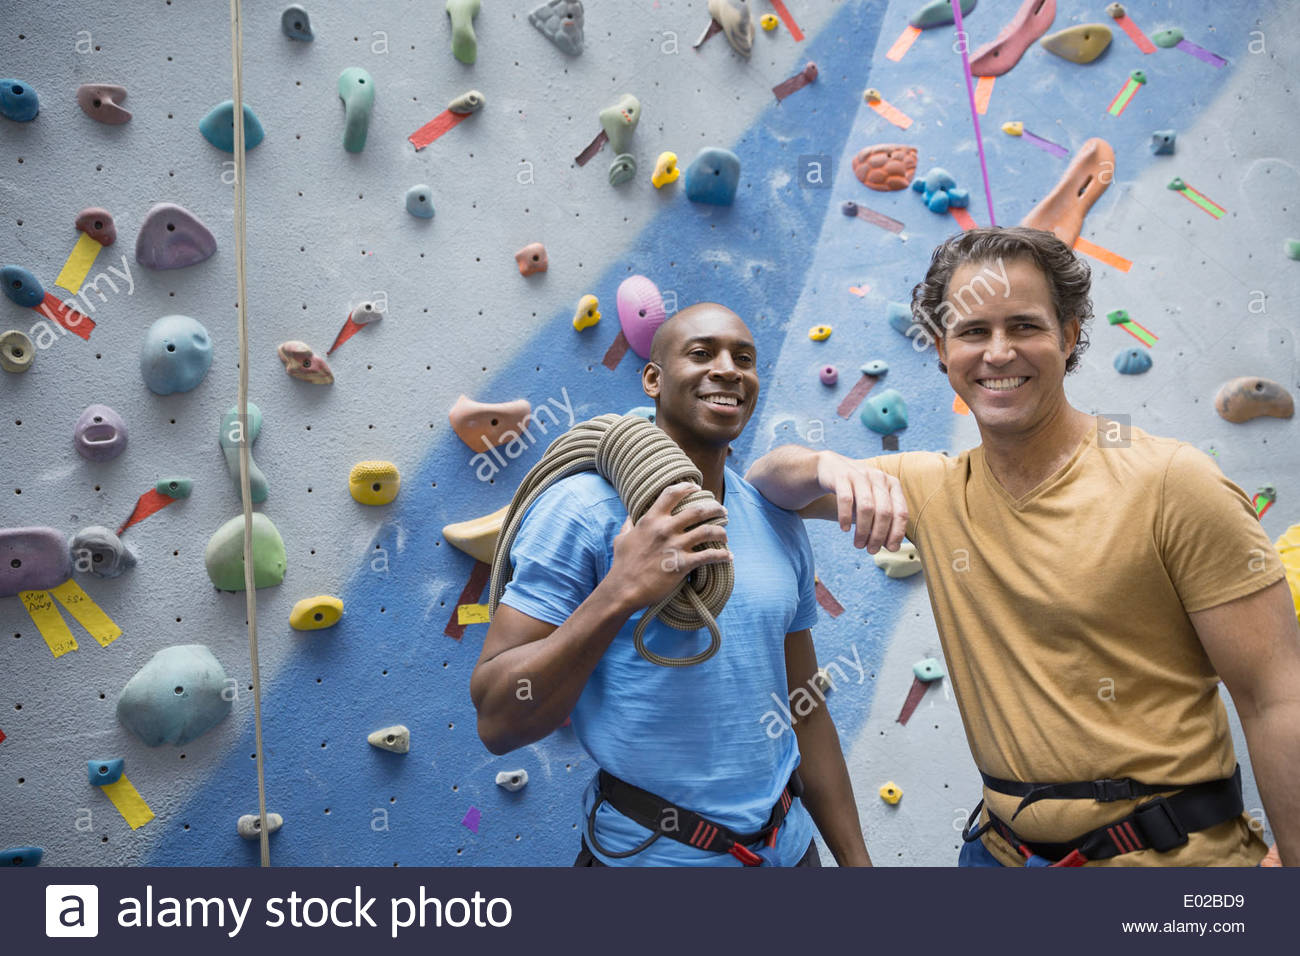 Smiling men with rope at rock climbing wall - Stock Image